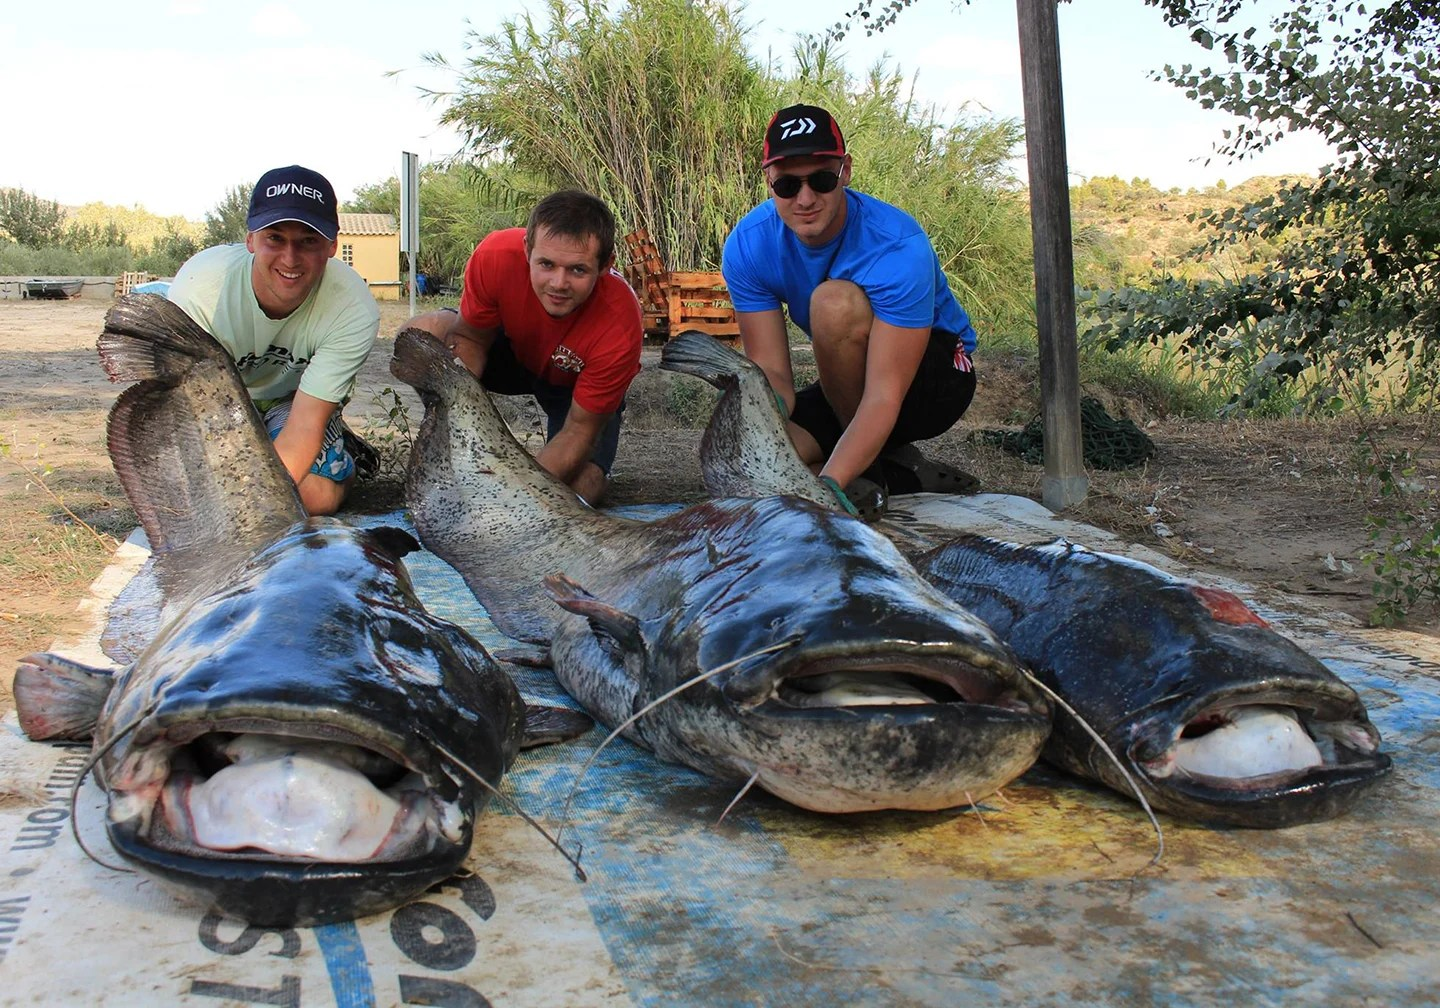 Three anglers posing with giant Wels Catfish, a frequent target on bucket list fishing trips